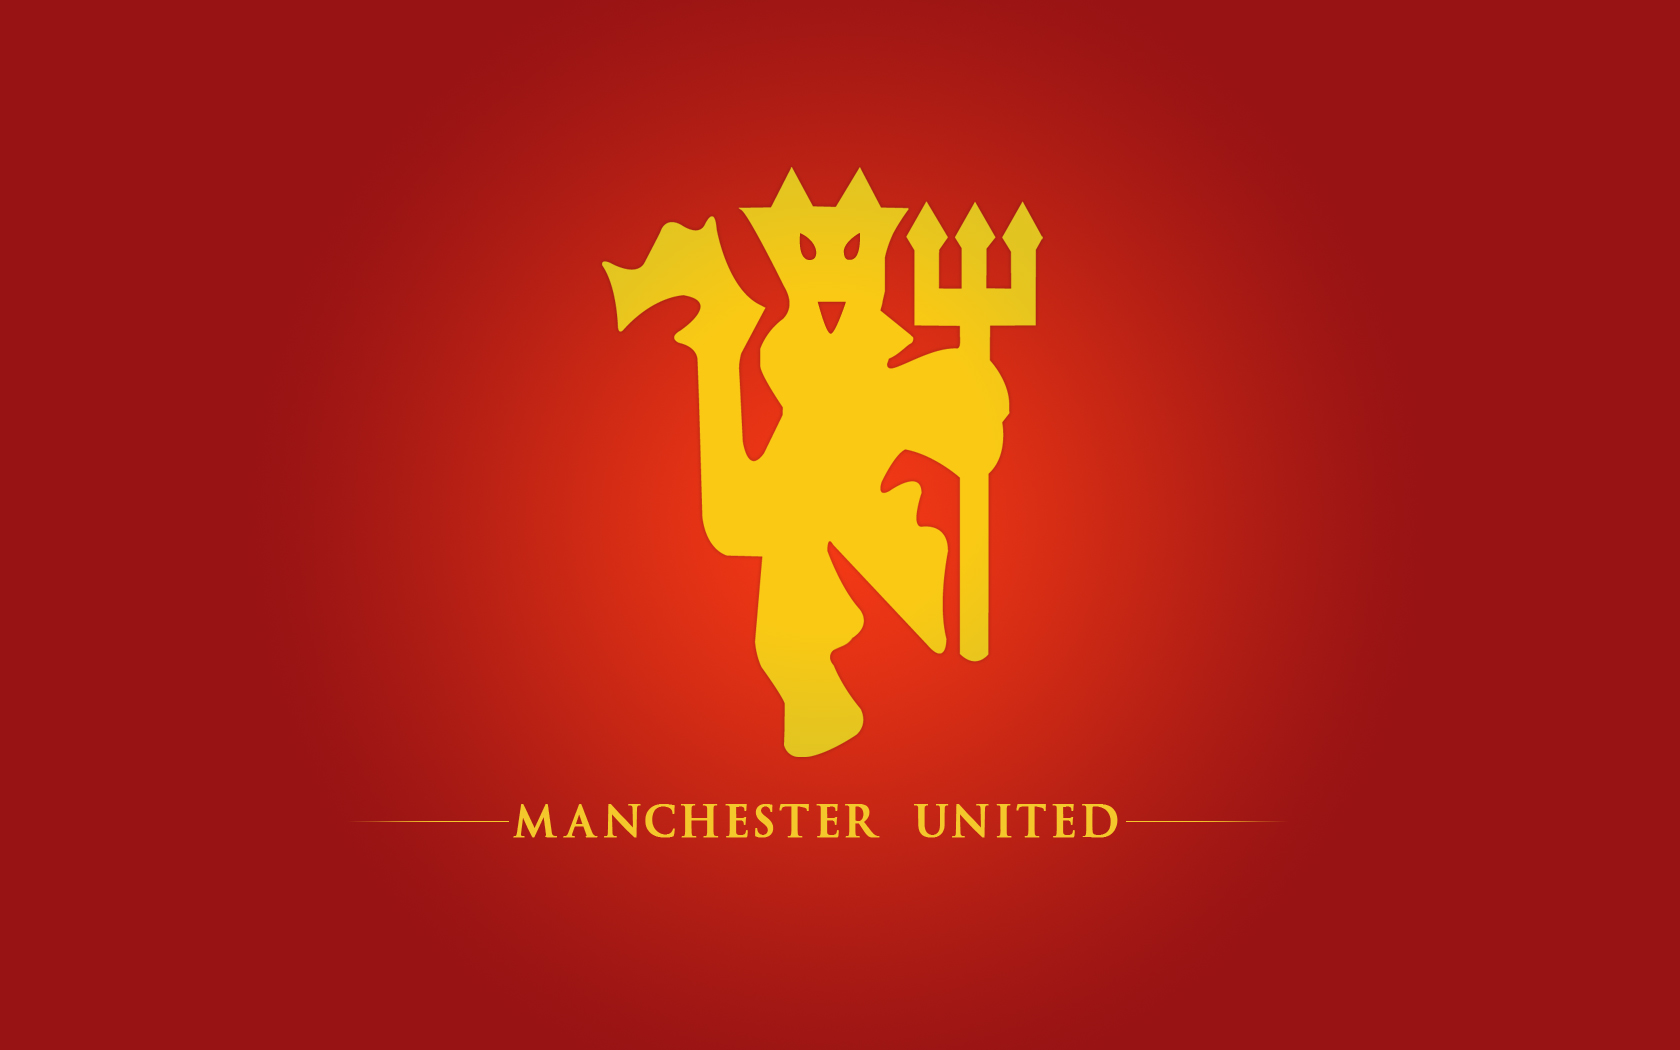 Clipart Of The Manchester United Red Devil Logo Free Image